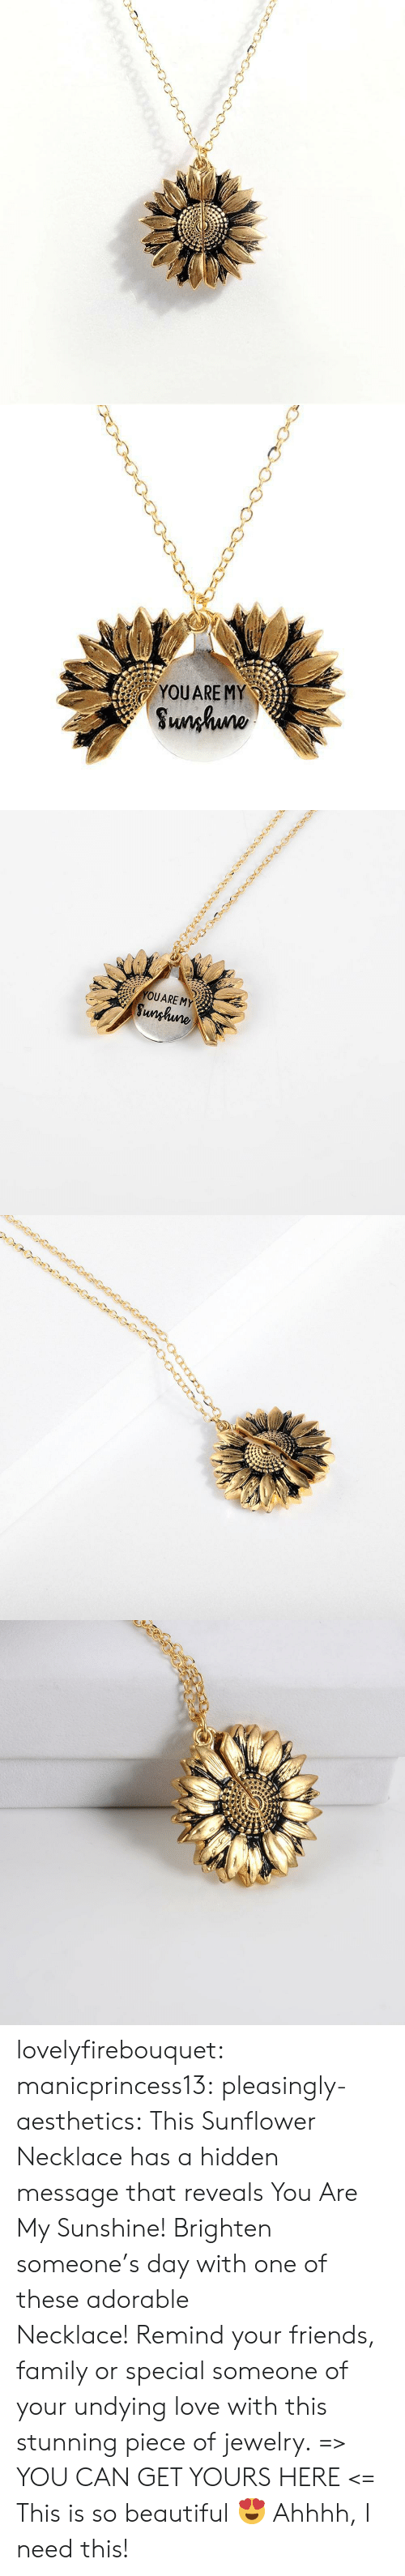 Beautiful, Family, and Friends: YOUARE MY  Sunhuno   YOUARE MY  Sunghune lovelyfirebouquet:  manicprincess13: pleasingly-aesthetics:  This Sunflower Necklace has a hidden message that reveals You Are My Sunshine! Brighten someone's day with one of these adorable Necklace! Remind your friends, family or special someone of your undying love with this stunning piece of jewelry. => YOU CAN GET YOURS HERE <=   This is so beautiful ?   Ahhhh, I need this!